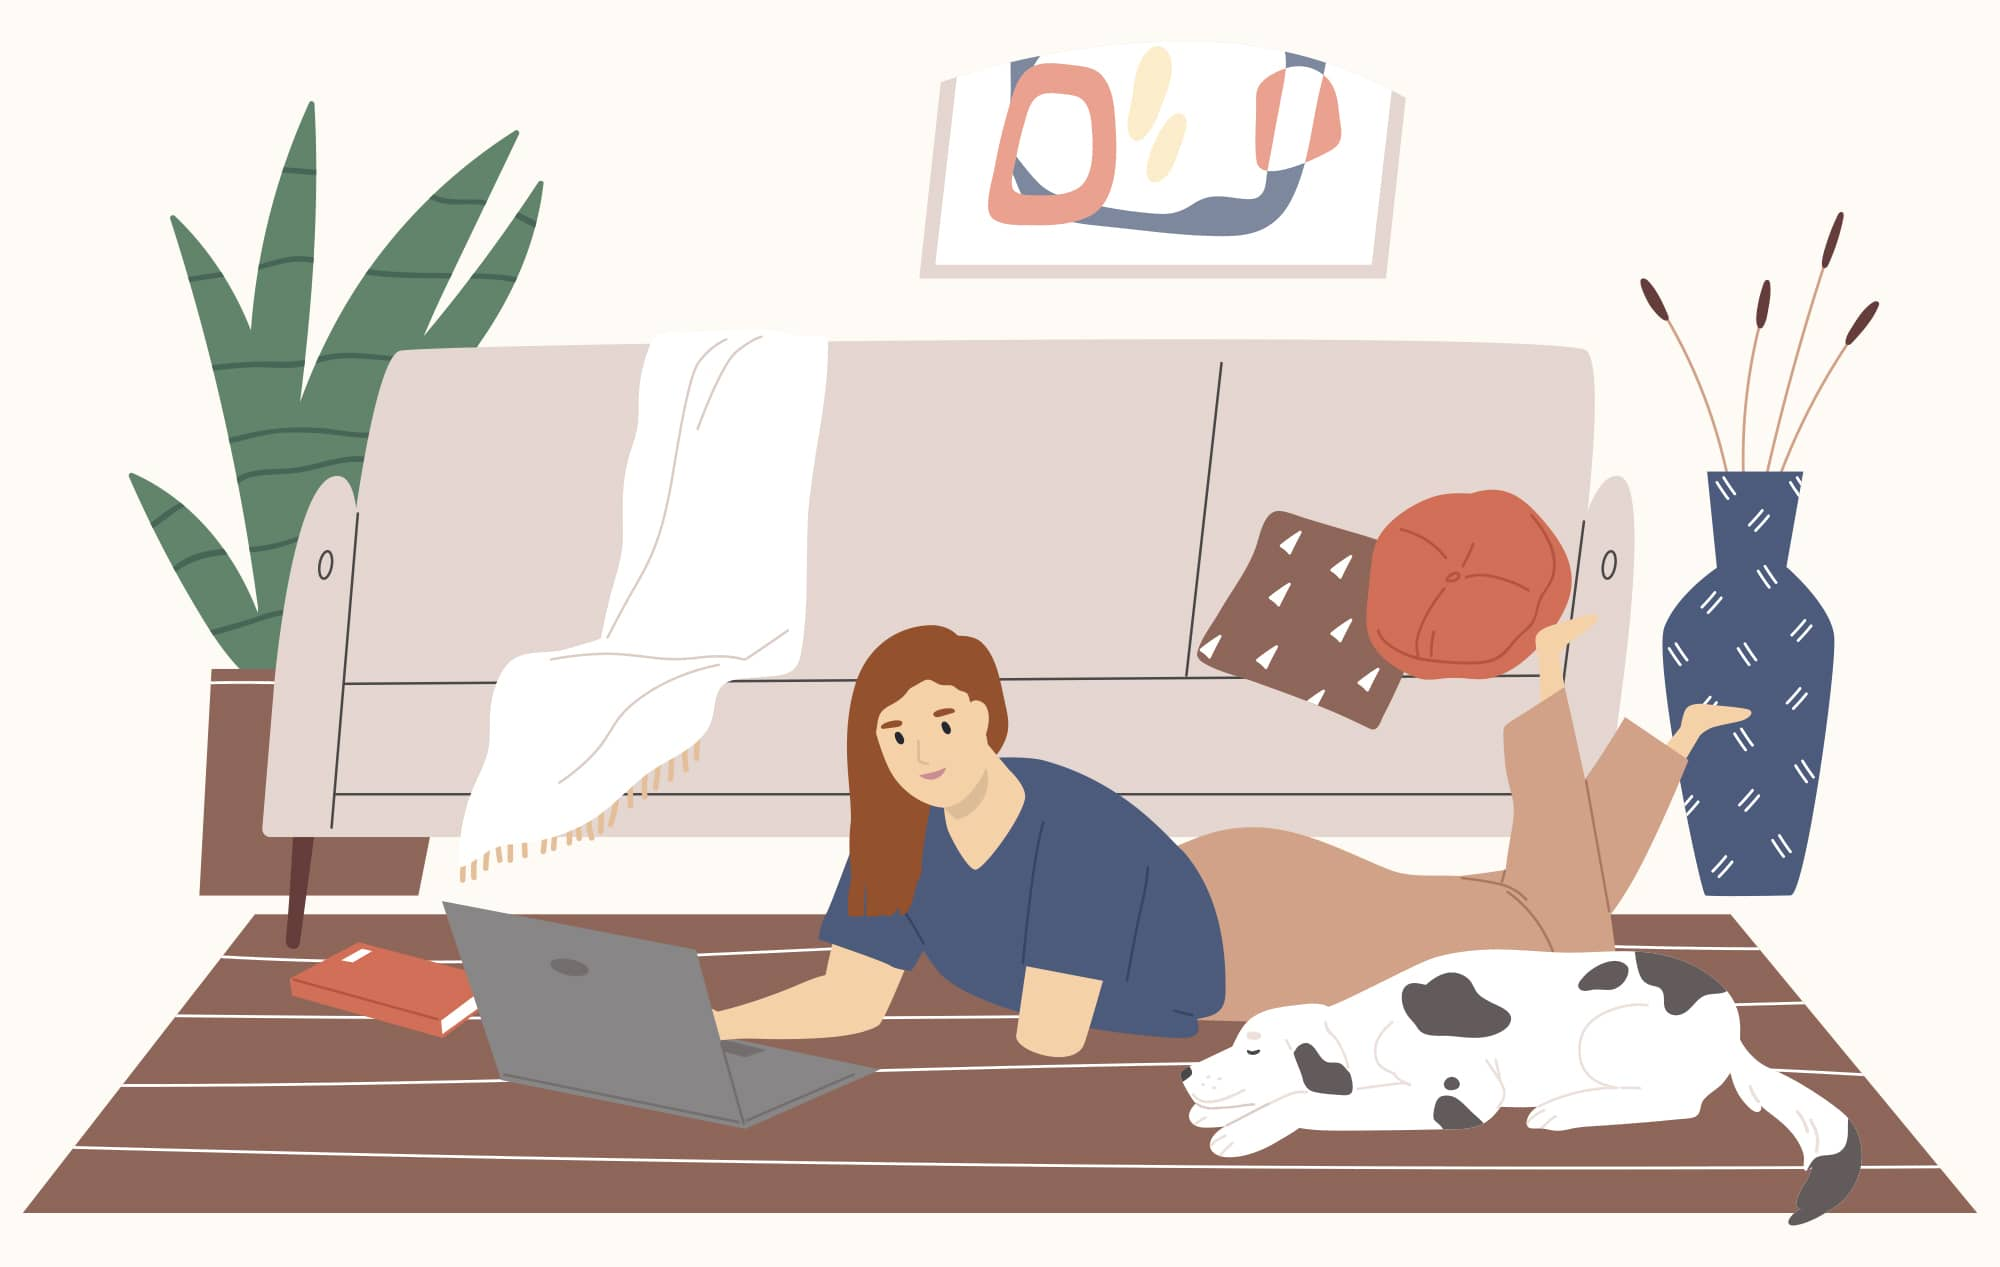 Redheaded woman with a limb difference lays on the floor working on her laptop while a dog sleeps next to her.